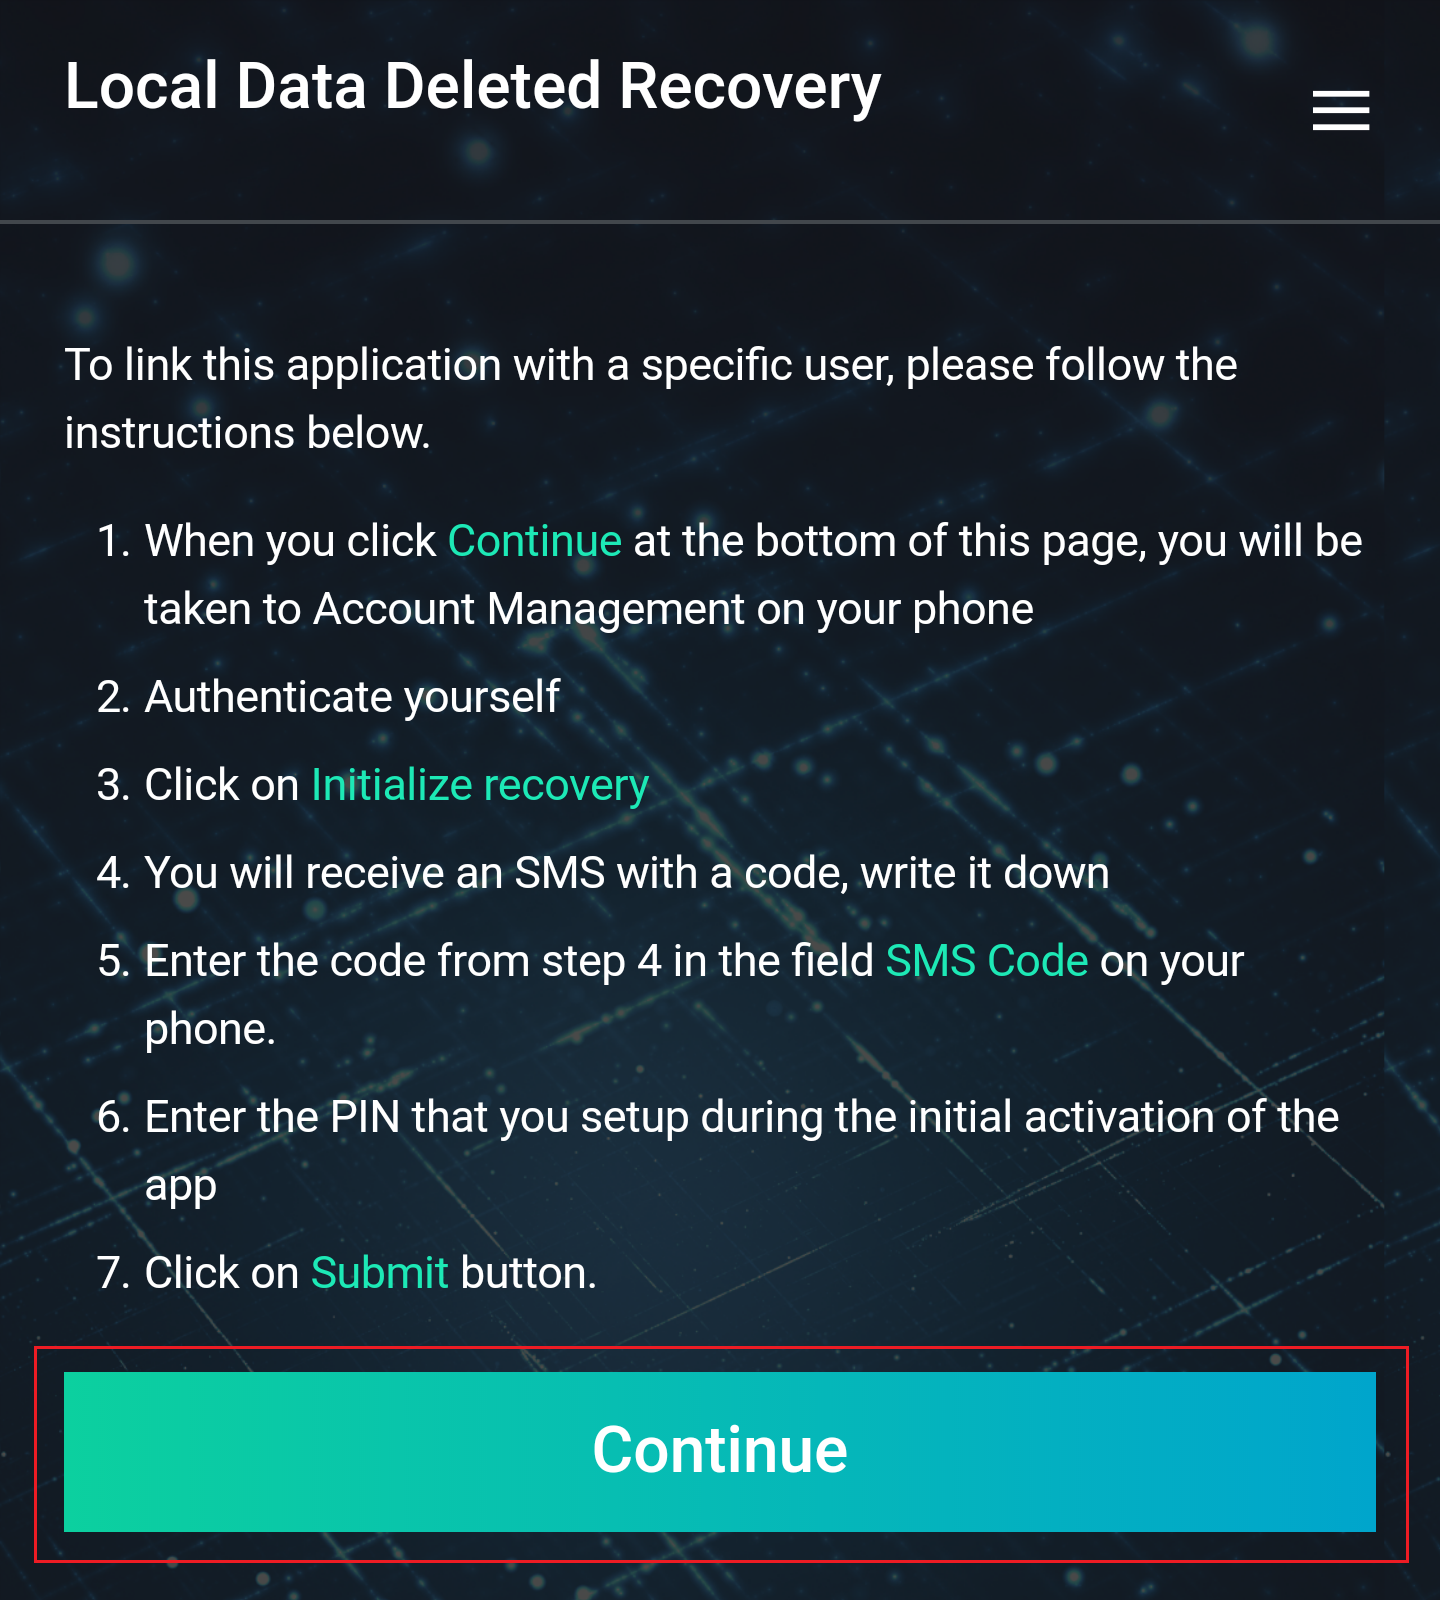 Local Data Deleted Recovery directions